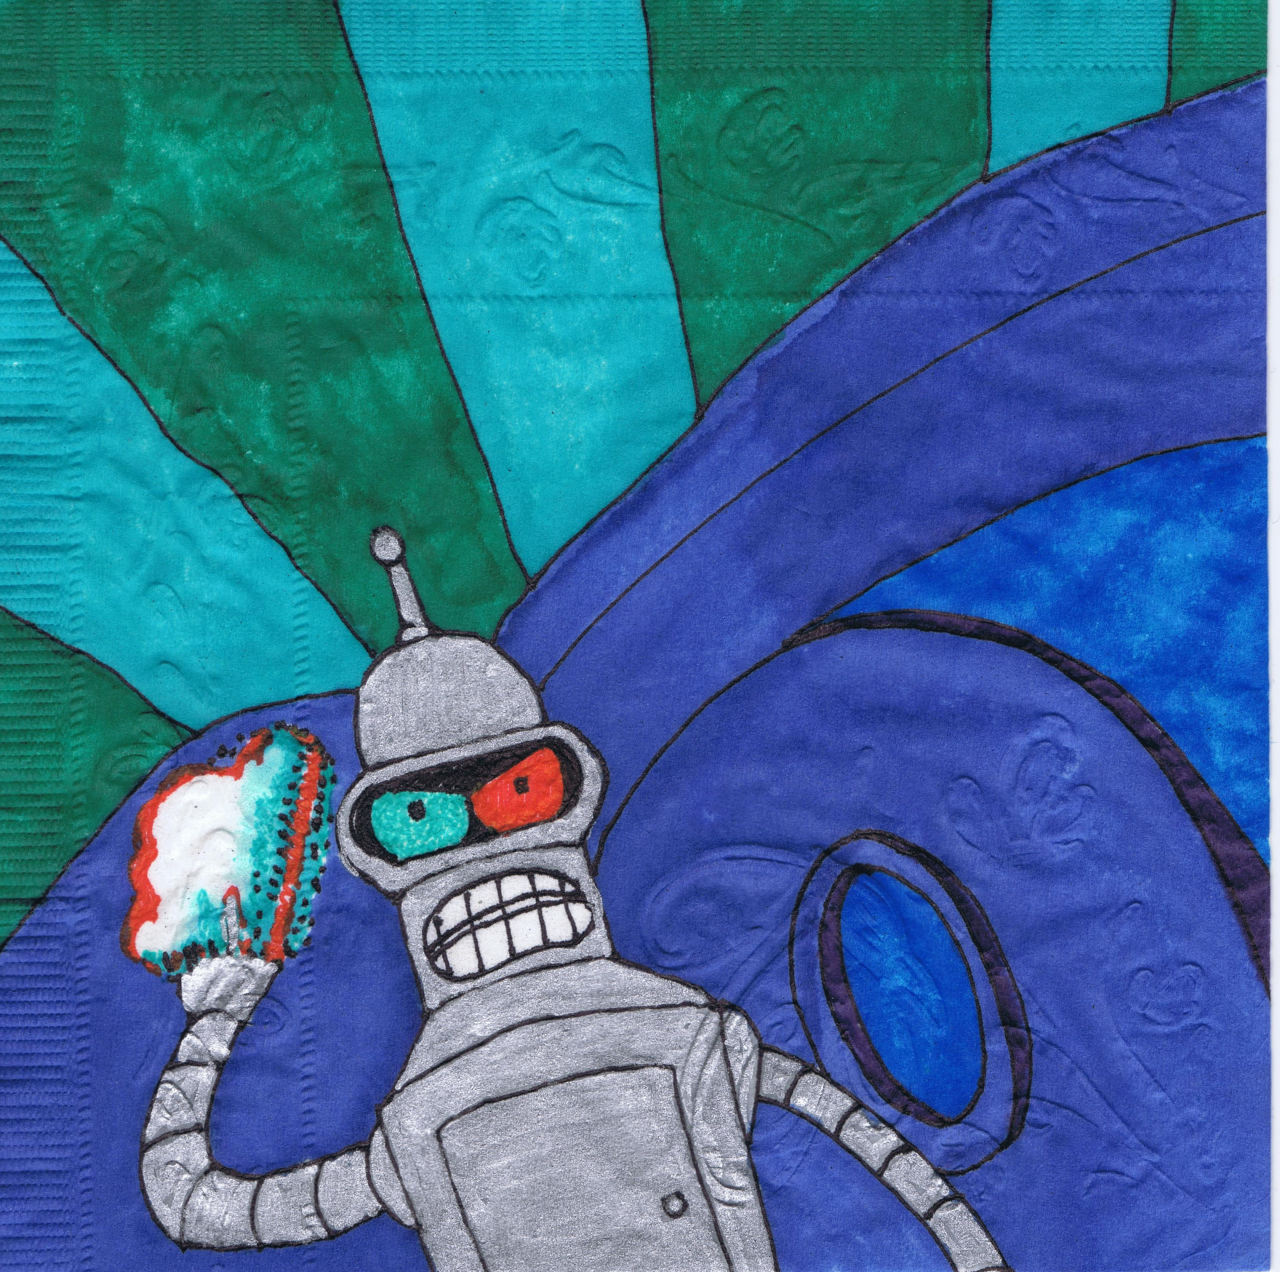 """Put on 3D glasses 5 minutes ago!""  More advice from Bender!  New napkin art."